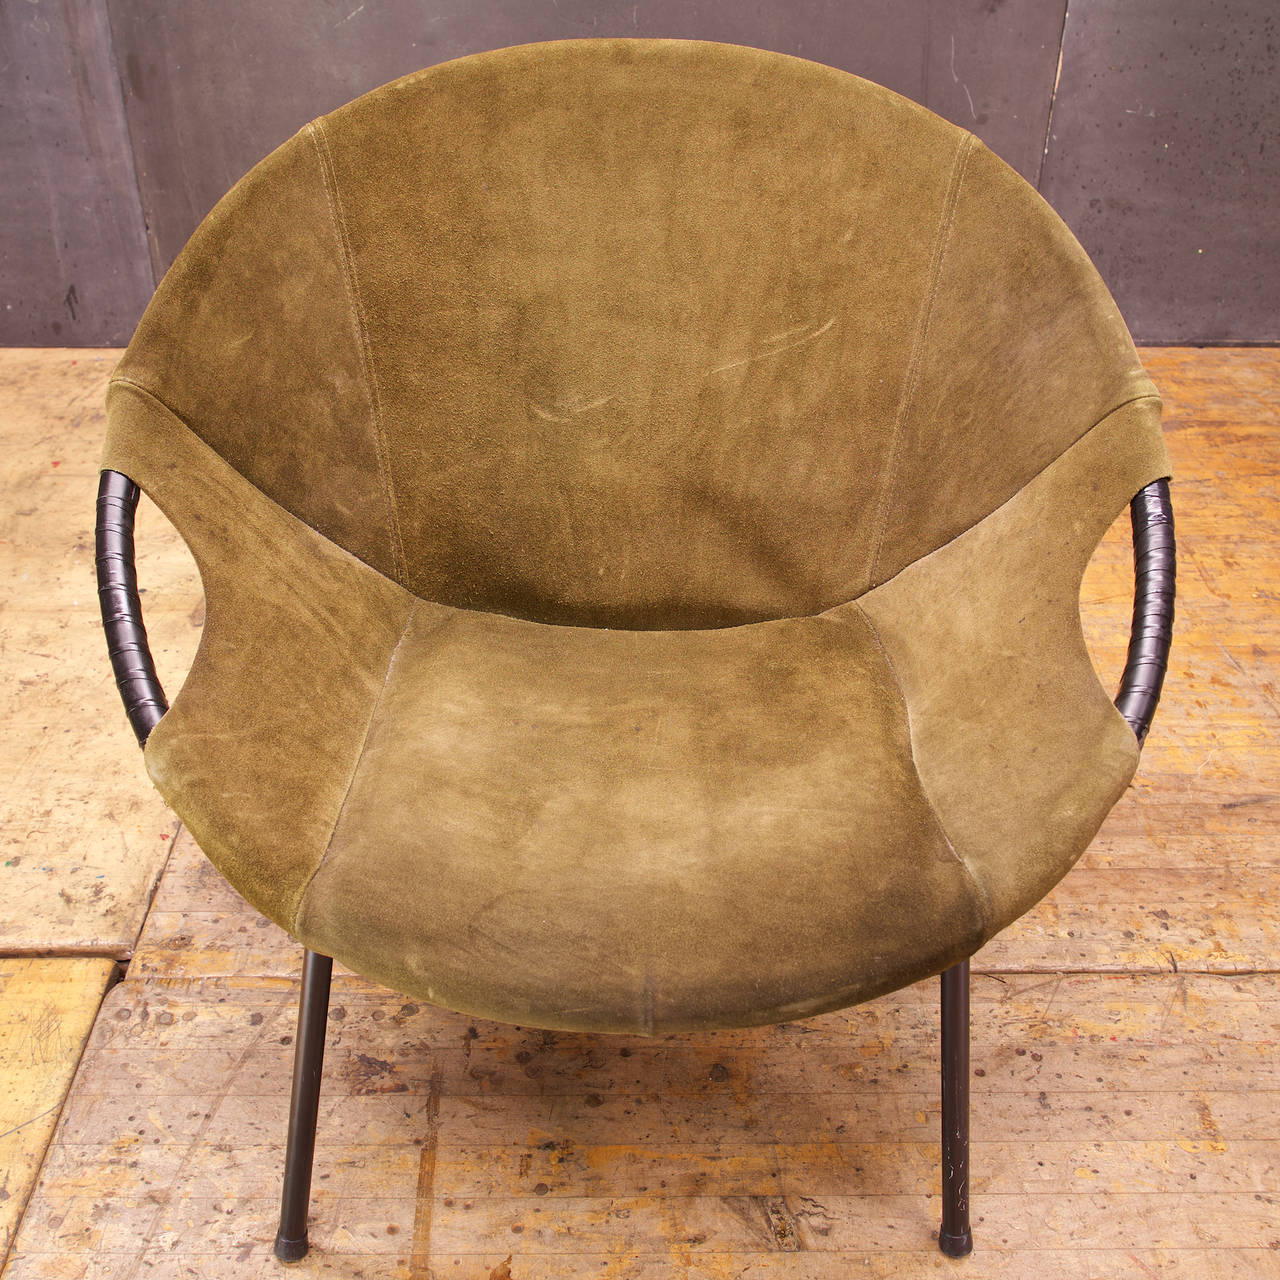 1960s Lusch Circle Chair In Greenish Brown Suede Leather